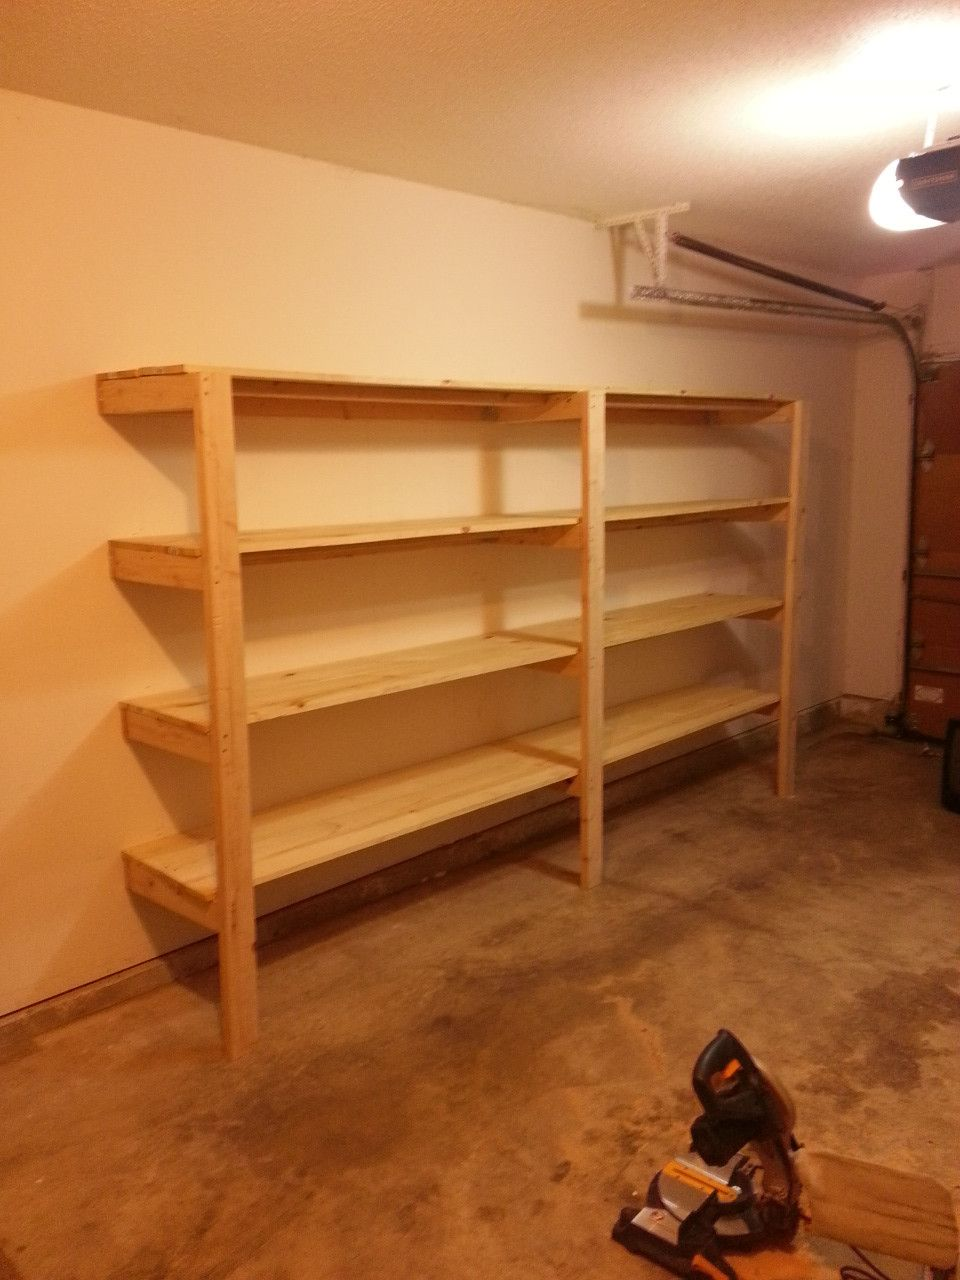 Storage for tubs but paint walls first then paint shelves storage for tubs but paint walls first then paint shelves espresso to take away the garage look shelving for storage shed amipublicfo Choice Image